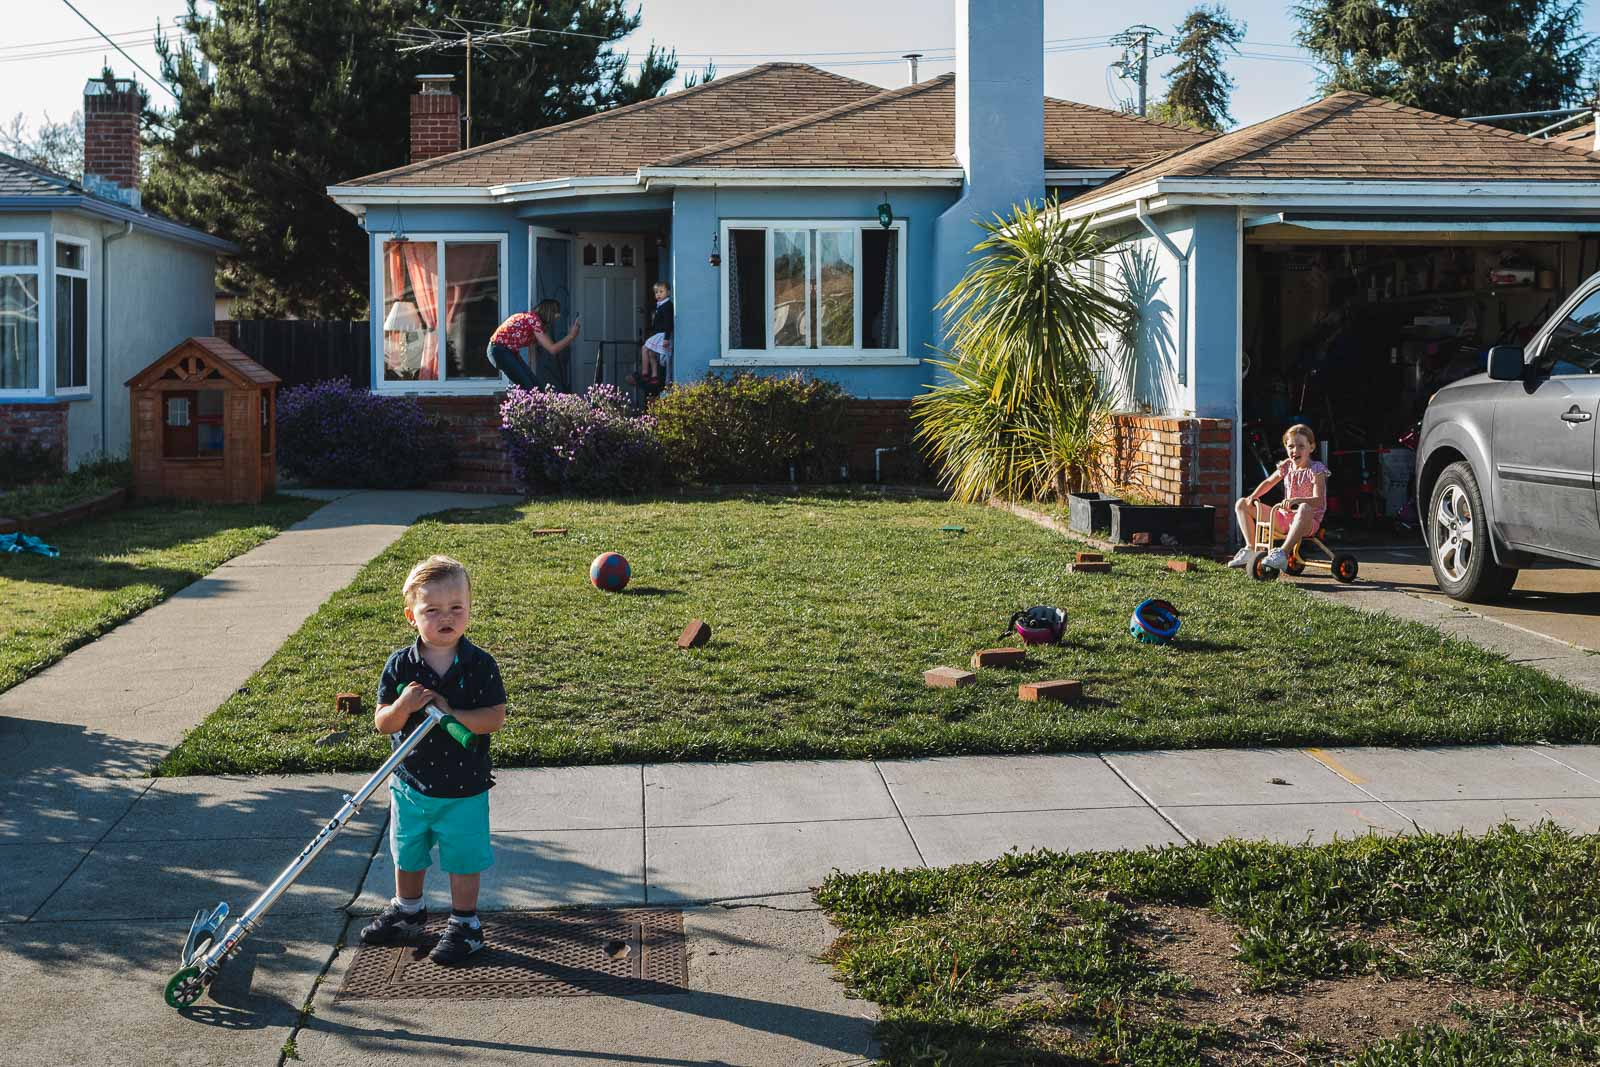 A family stands in front of their home in Alameda, CA